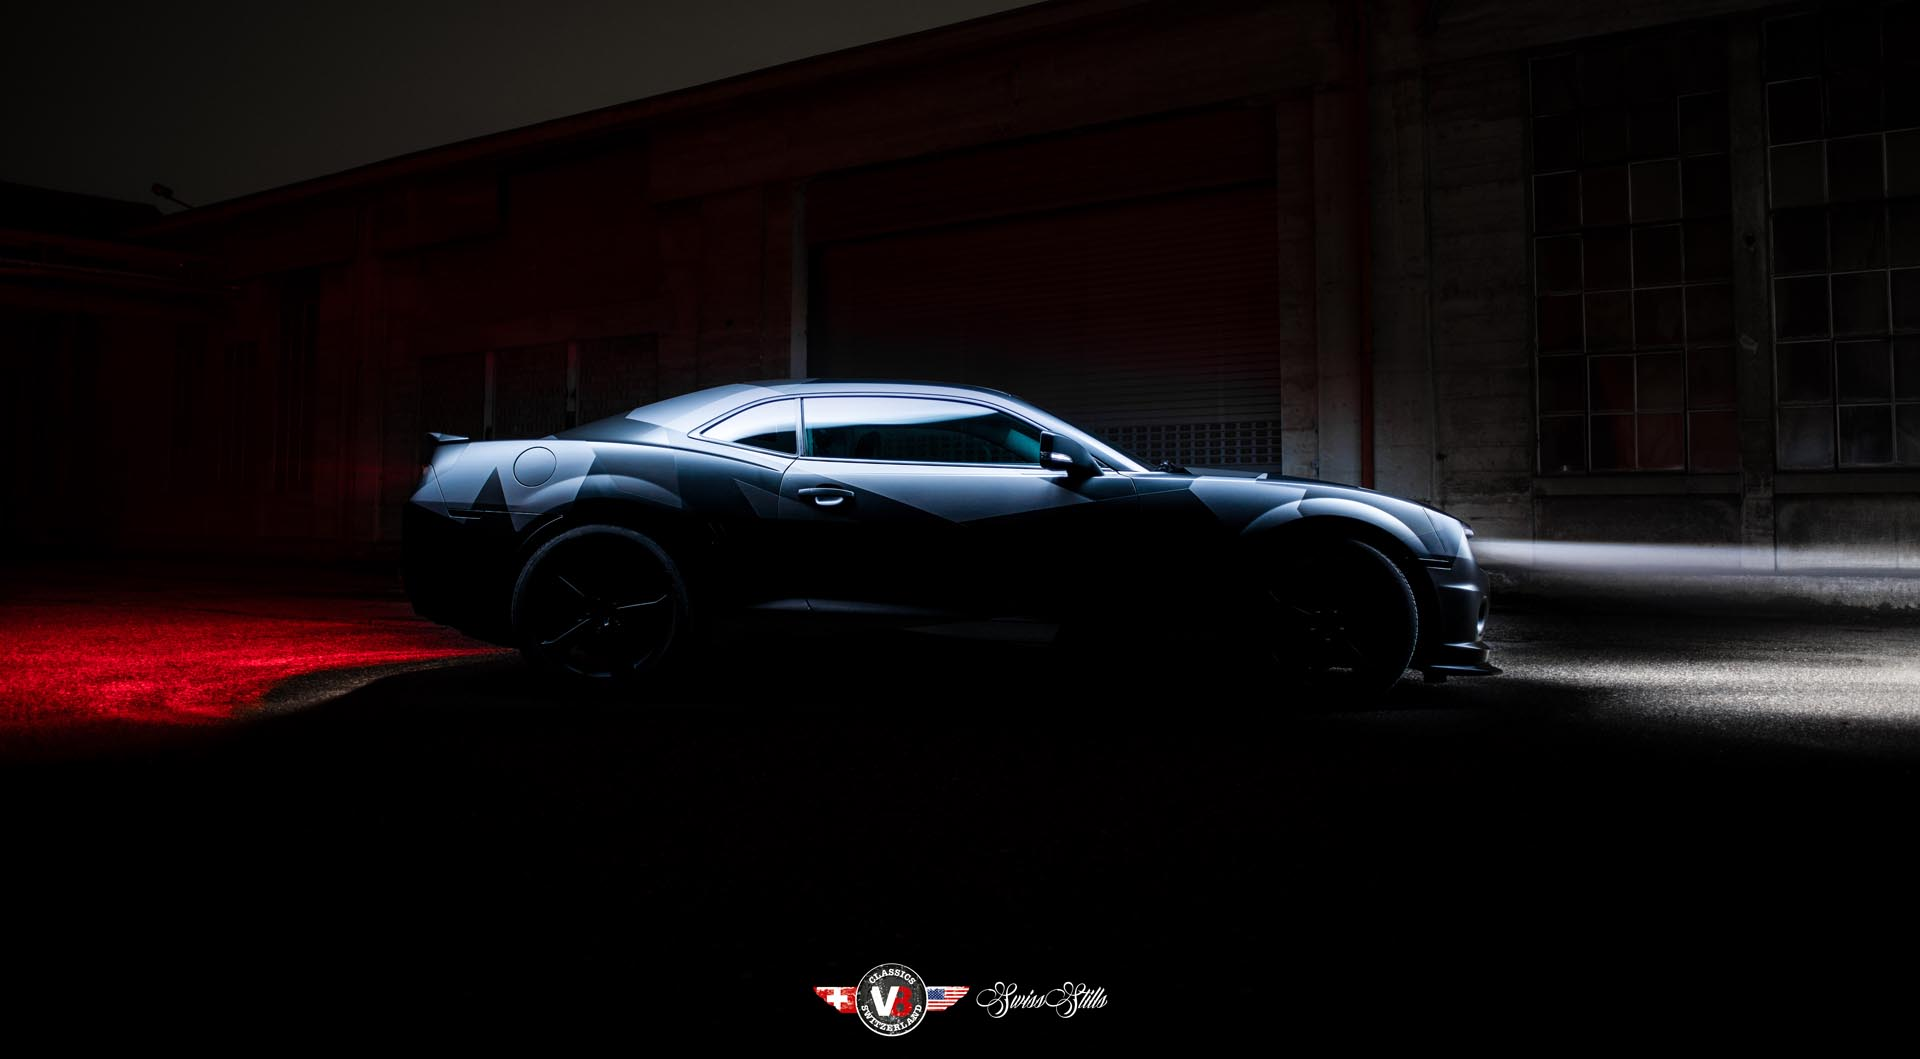 Stealthfighter - Chevrolet Camaro